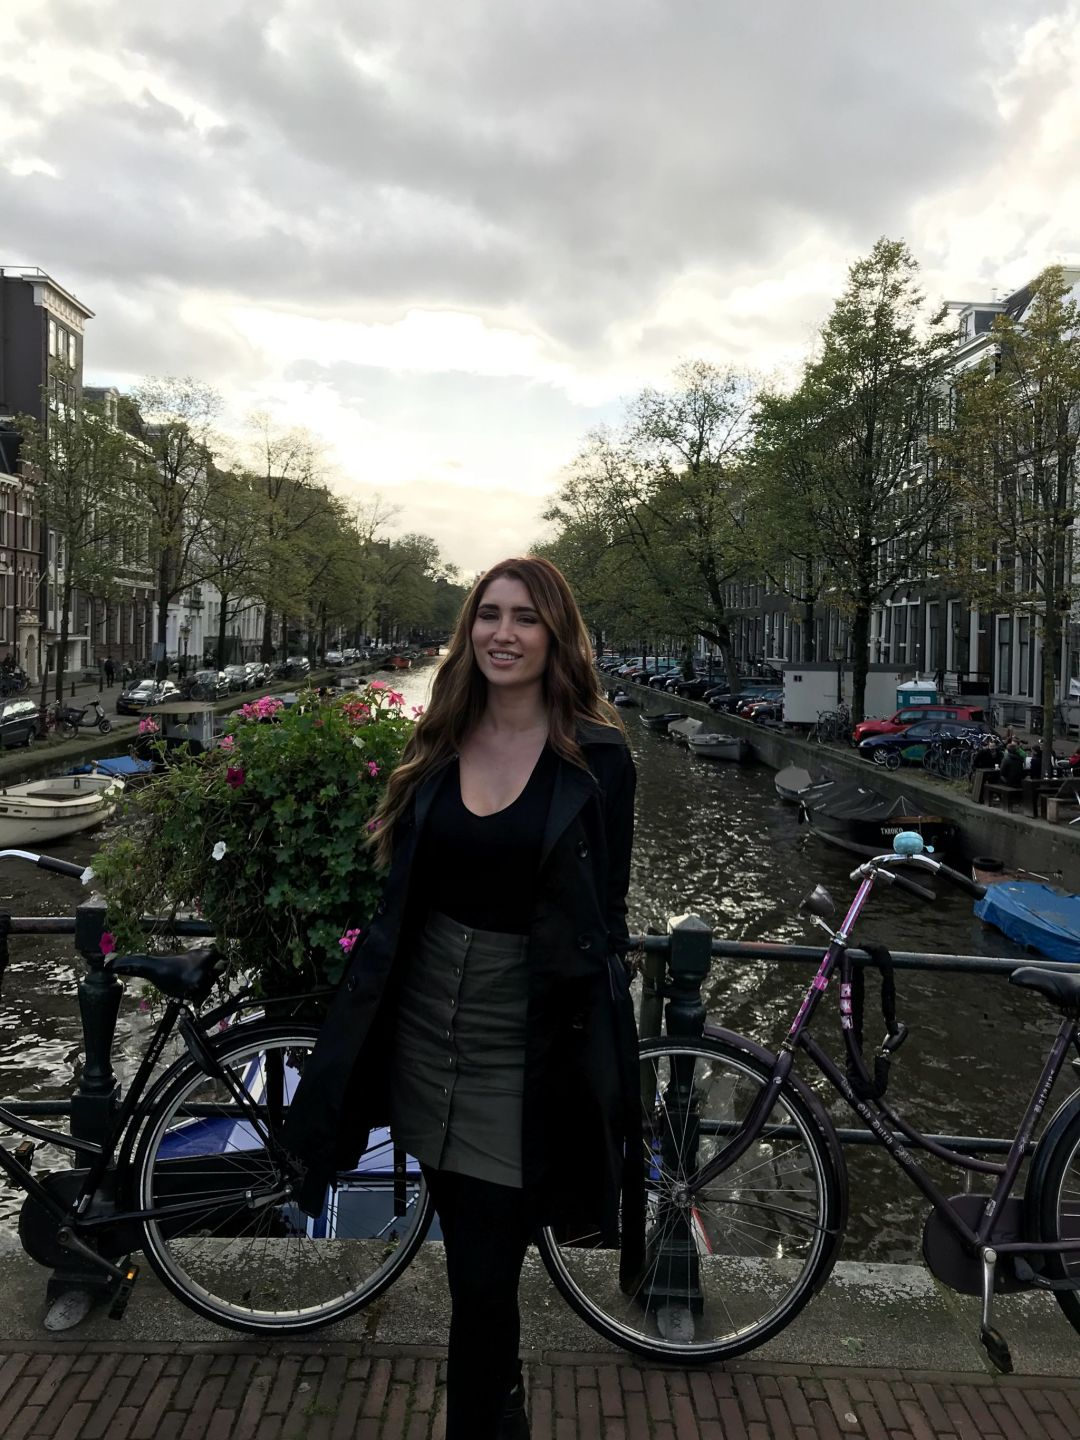 A Weekend In The Netherlands